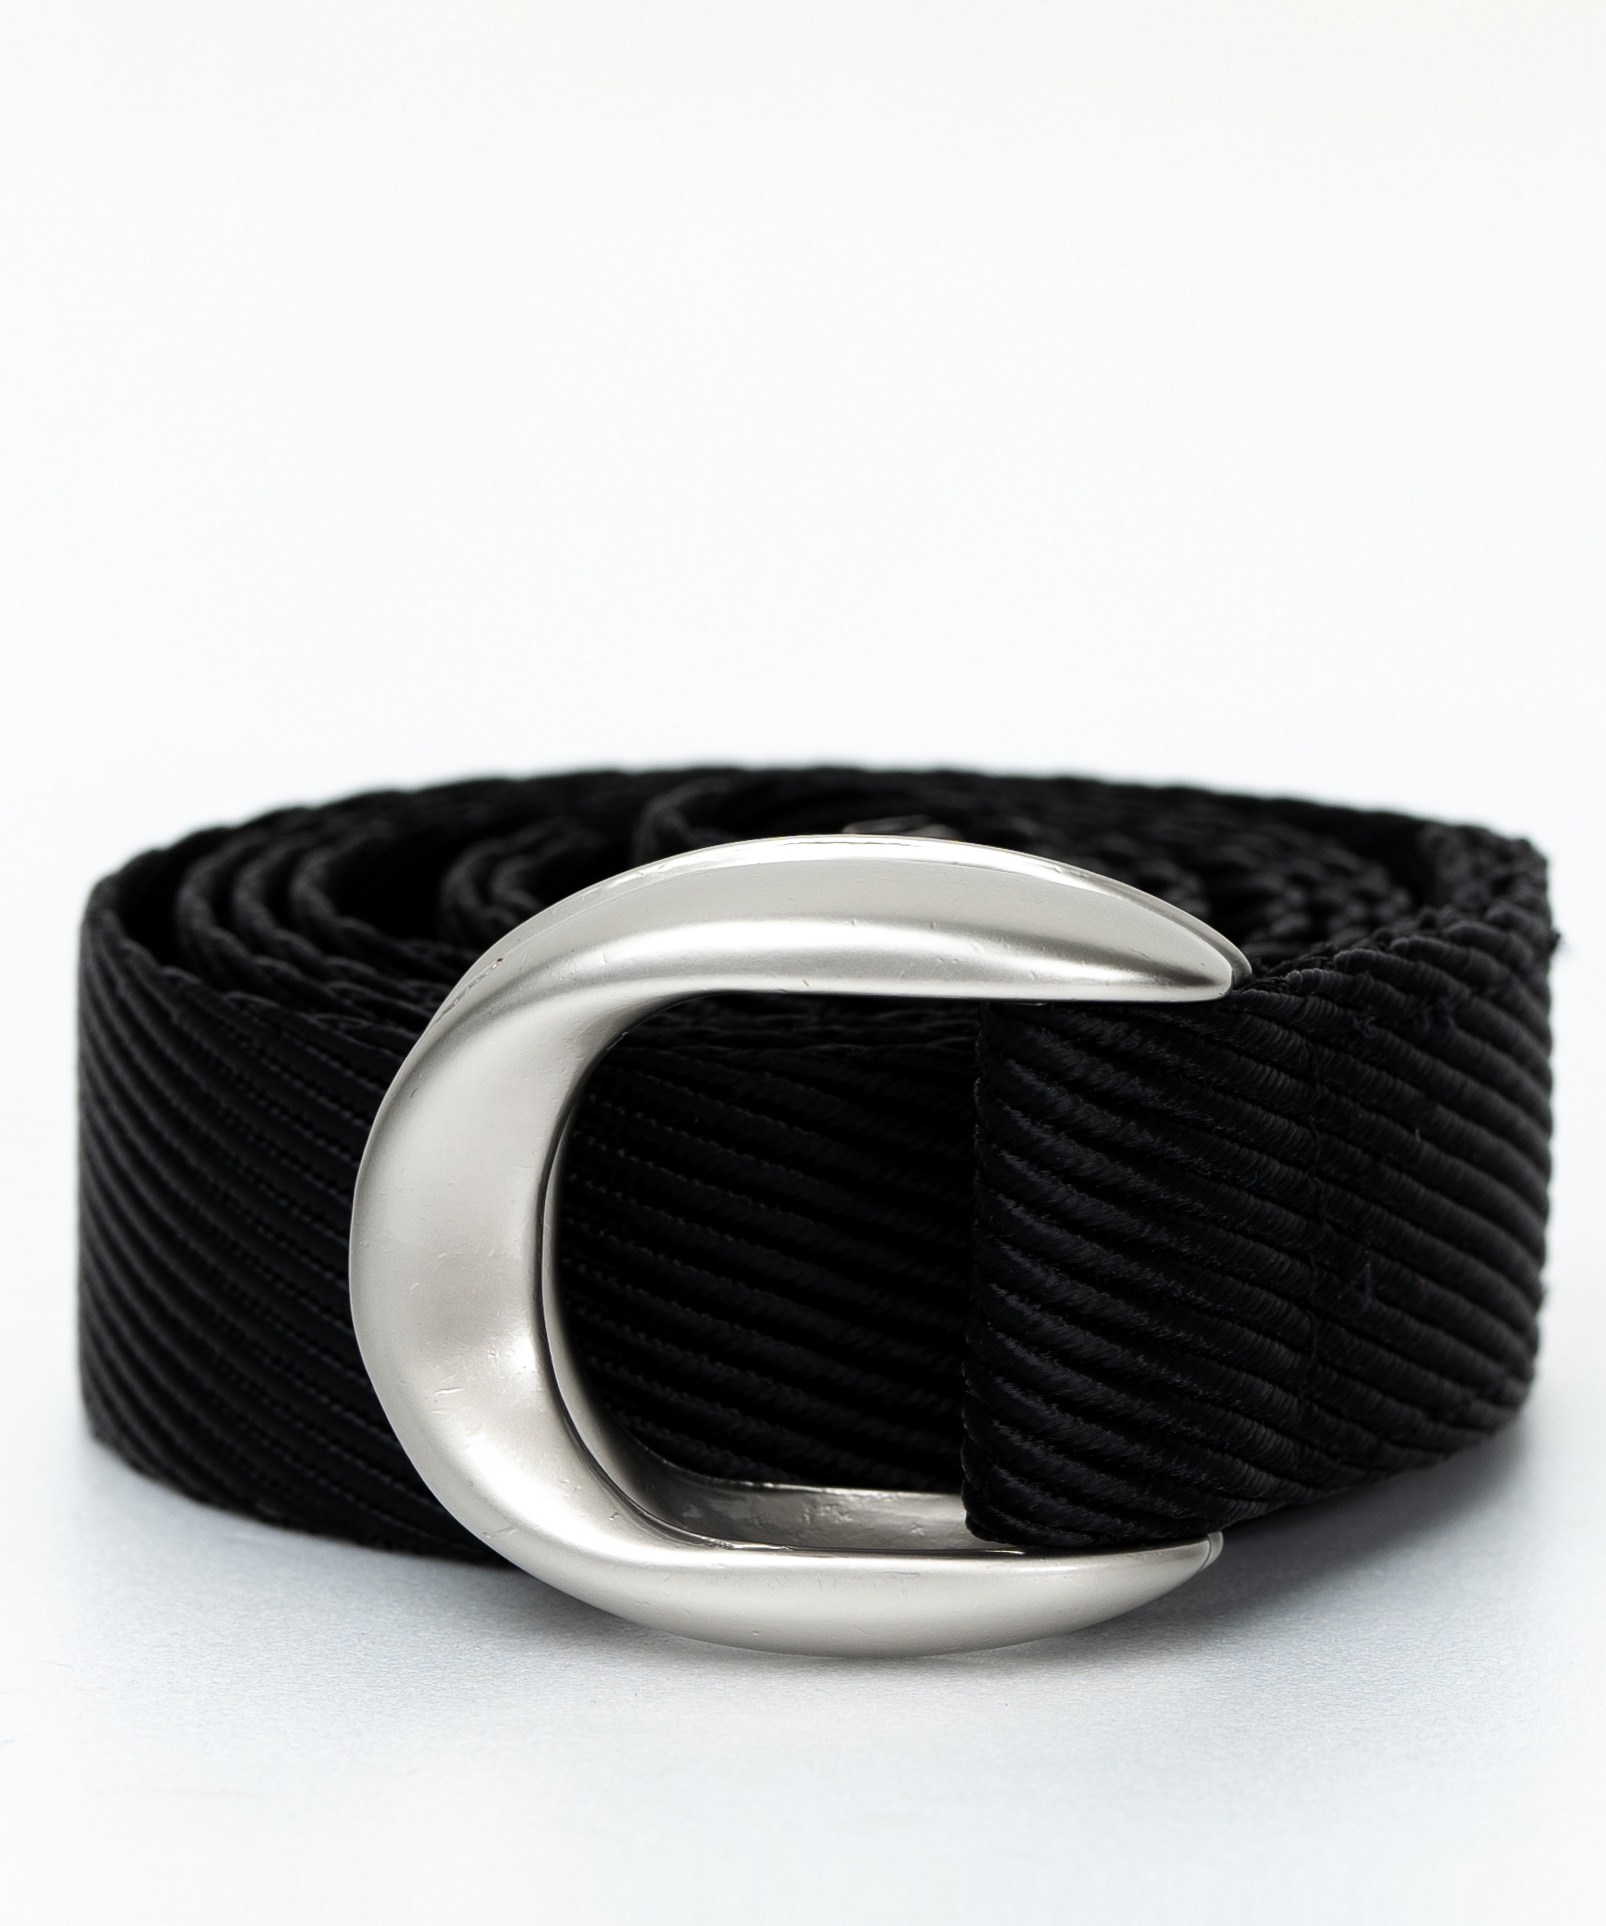 HAH ARCHIVE하 아카이브 HEAVY TWILL ARCHIVE BELT-3